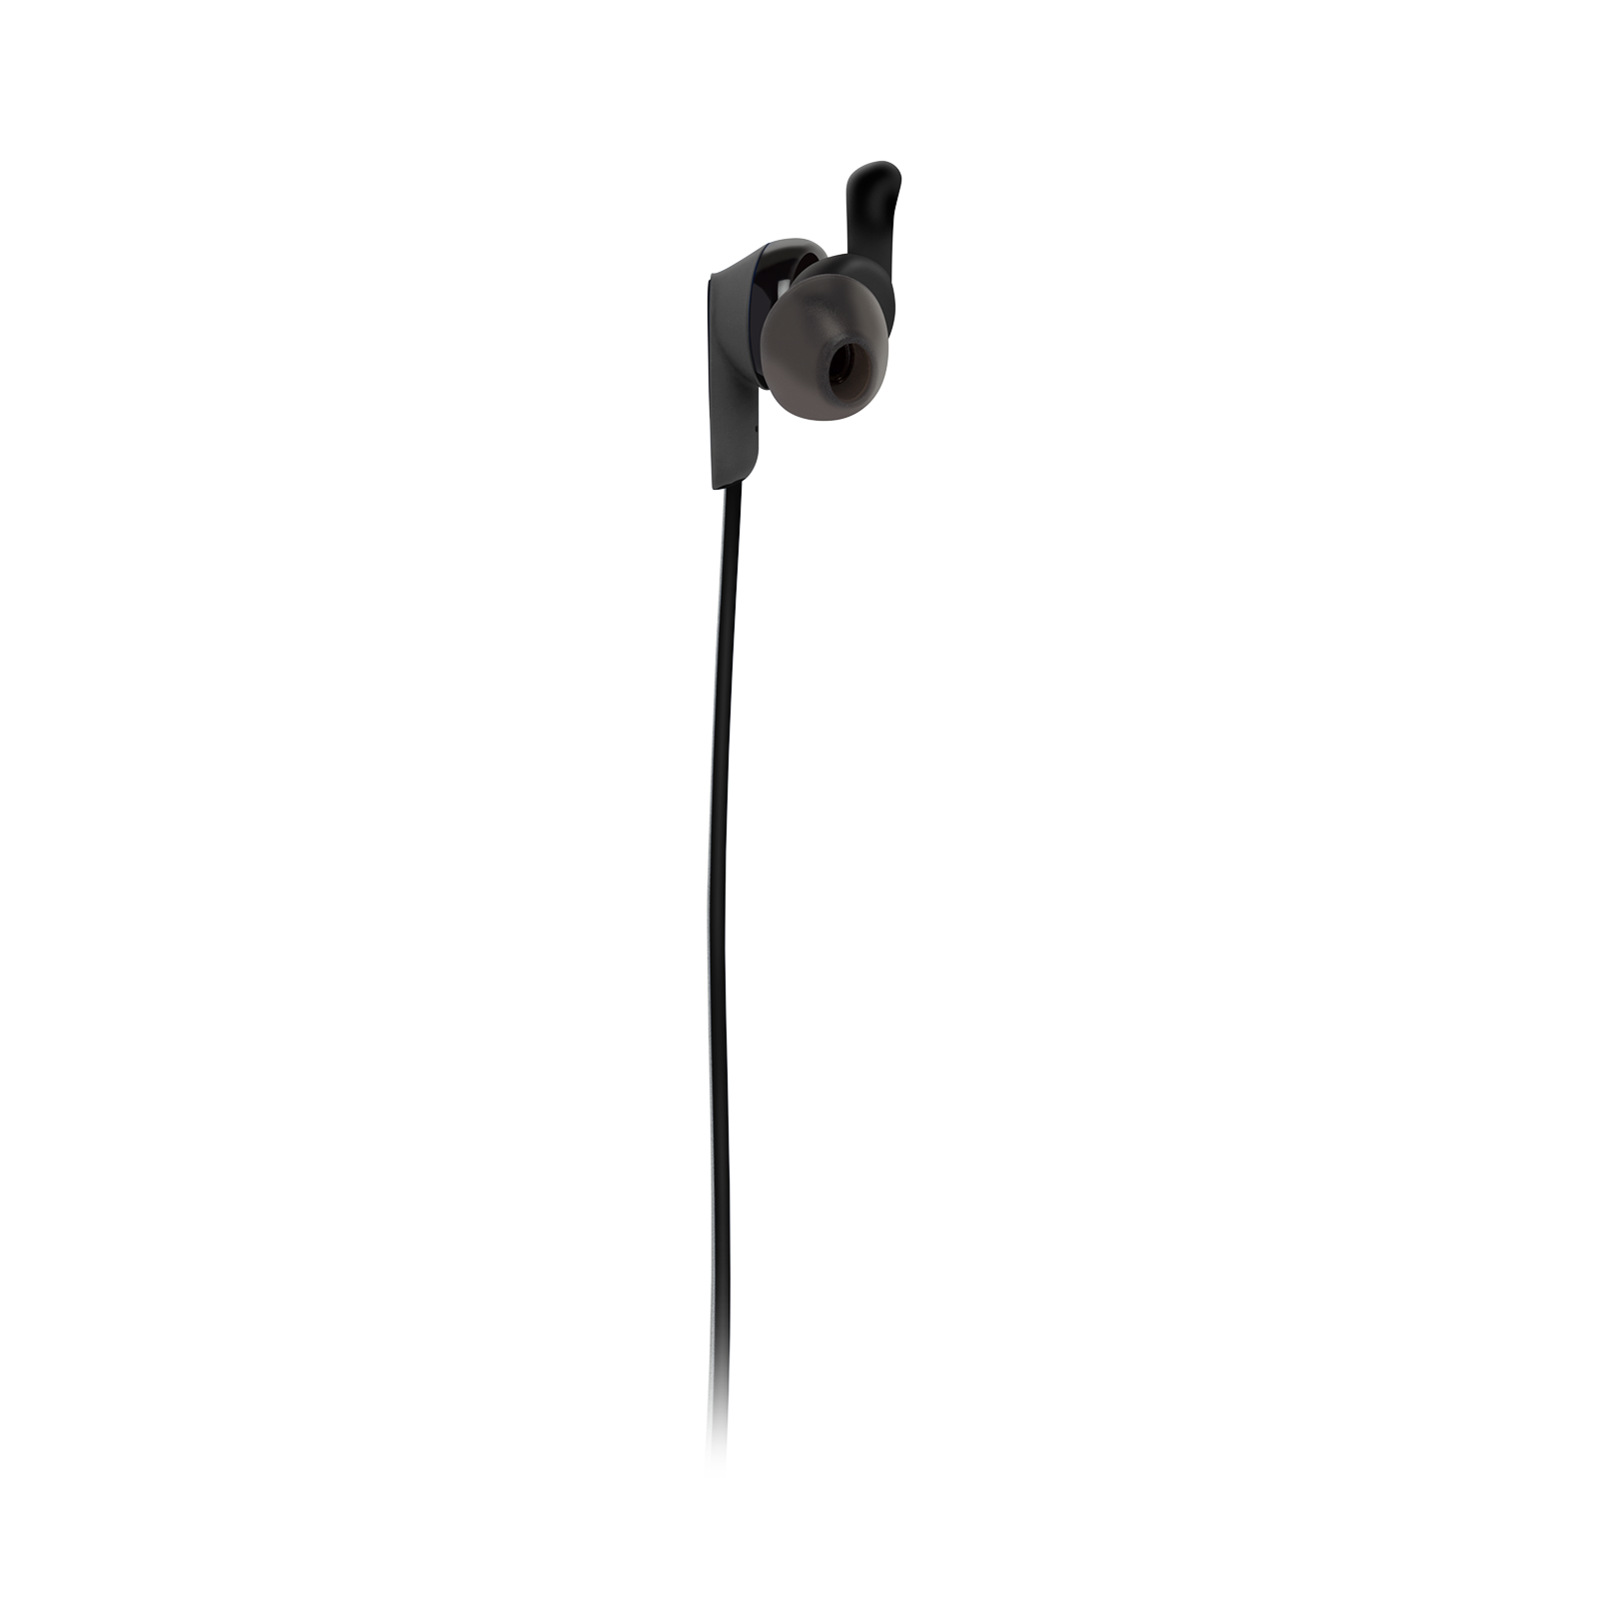 Reflect Aware - Black - Lightning connector sport earphone with Noise Cancellation and Adaptive Noise Control. - Detailshot 3